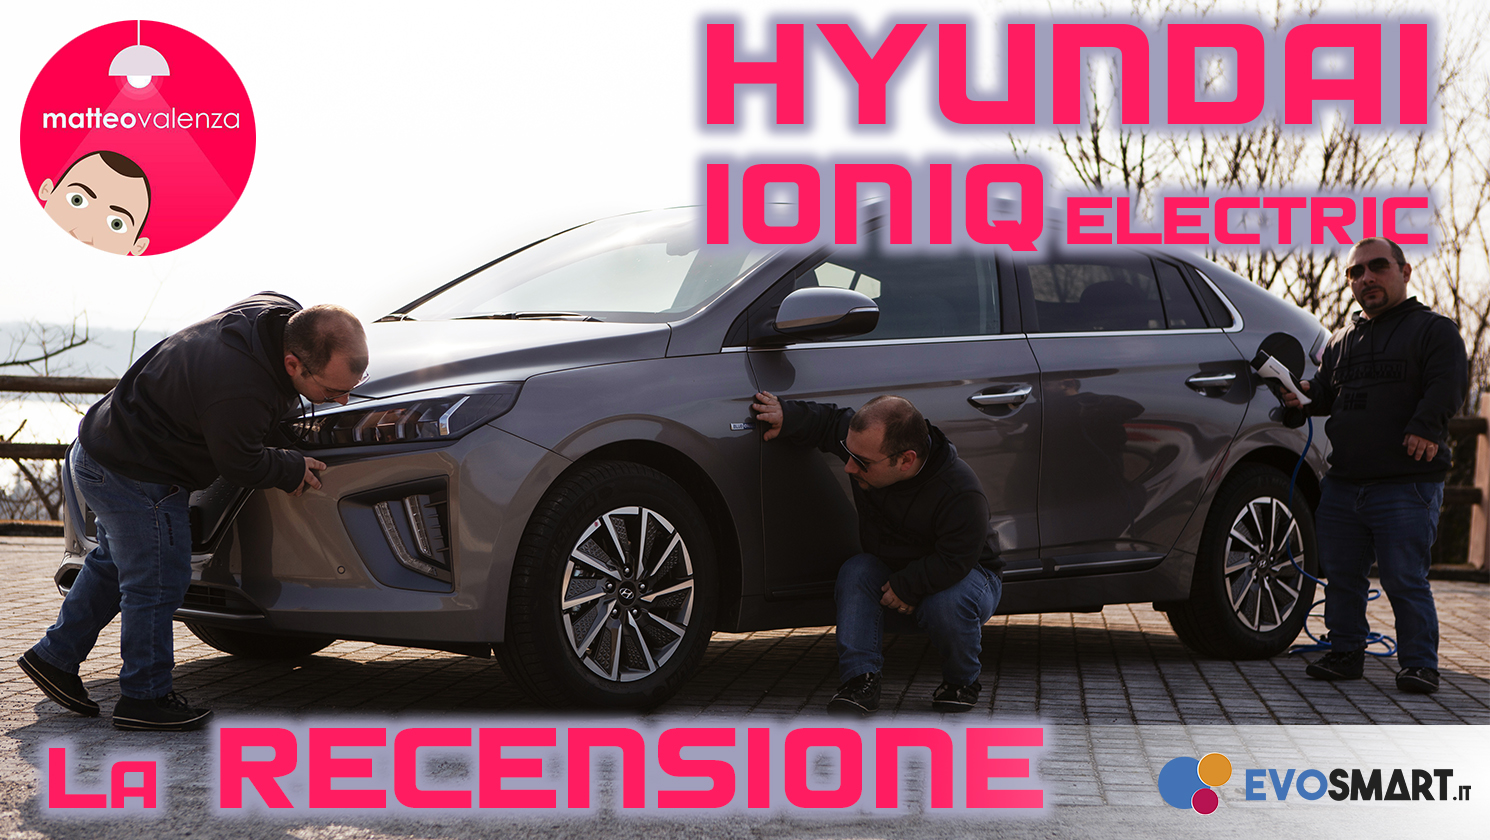 Hyundai IONIQ Electric - La recensione in video